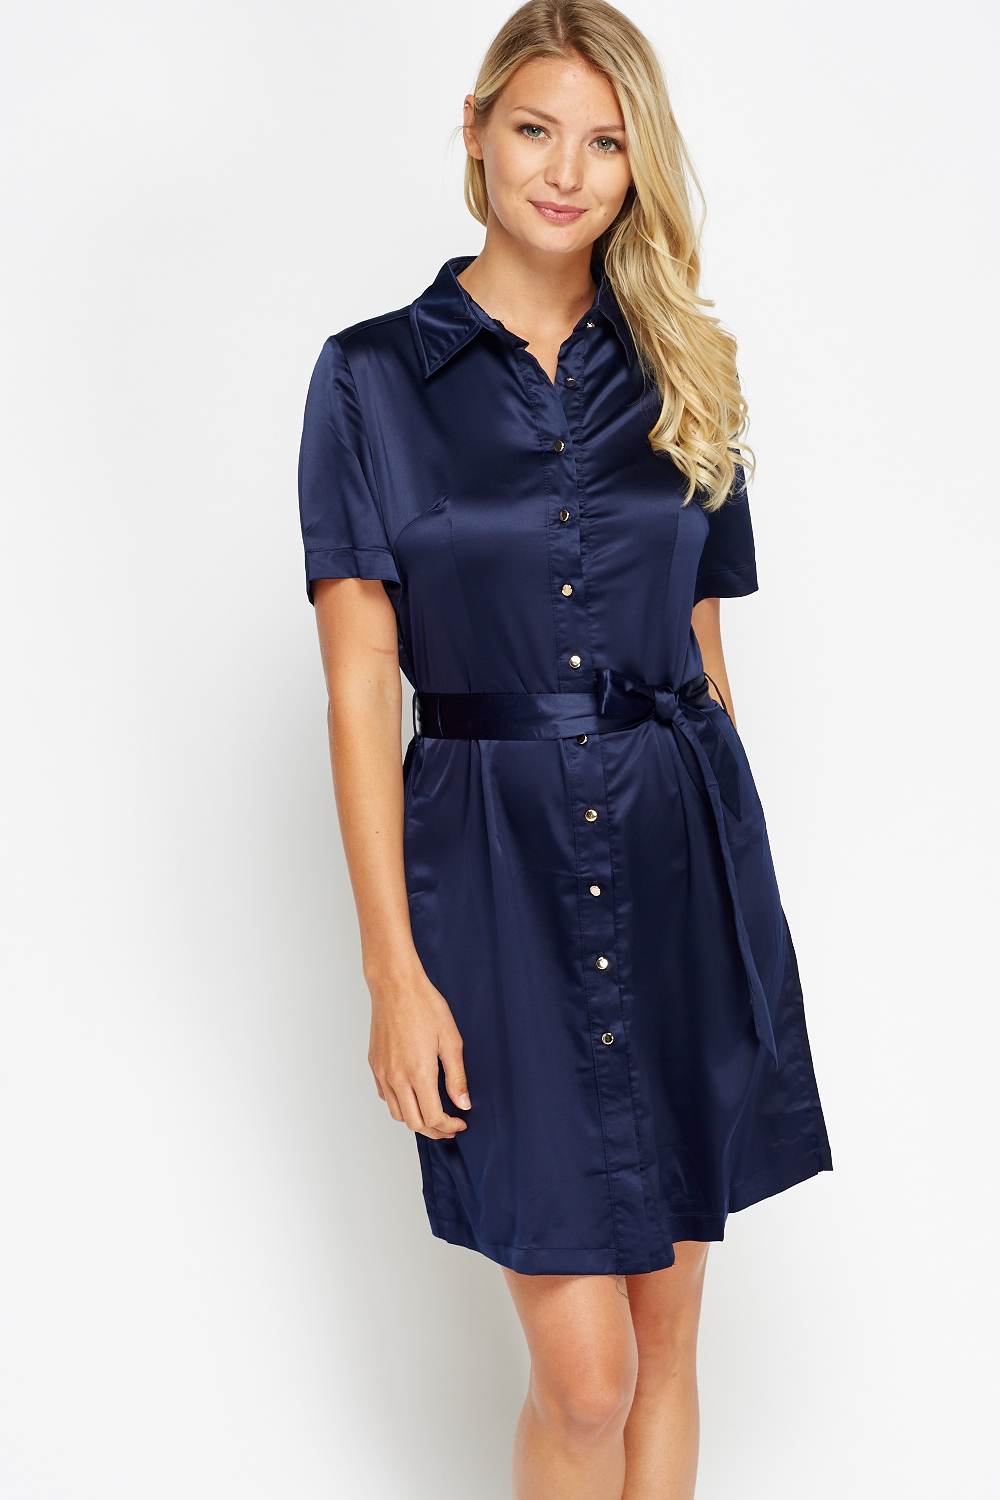 Free shipping on women's shirtdresses at smashingprogrammsrj.tk Shop for T-shirt dresses, denim & silk shirtdresses & more from top brands. Free shipping & returns.